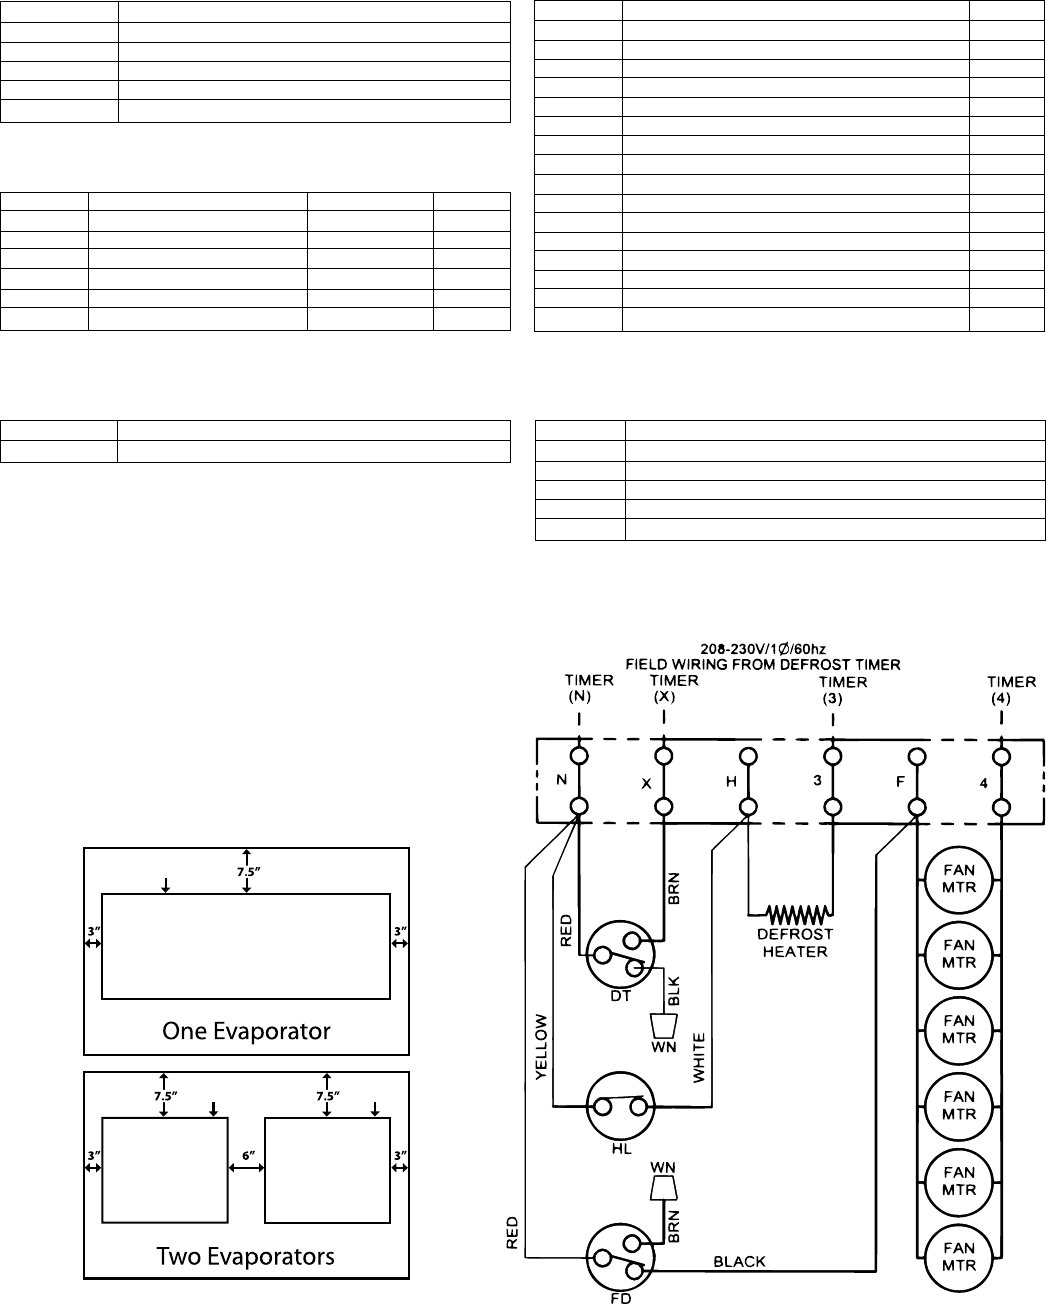 2f271777 ed48 431c affa 693c84f3fb6b bgb page 11 of heatcraft refrigeration products humidifier 25005601 defrost termination switch wiring diagram at n-0.co